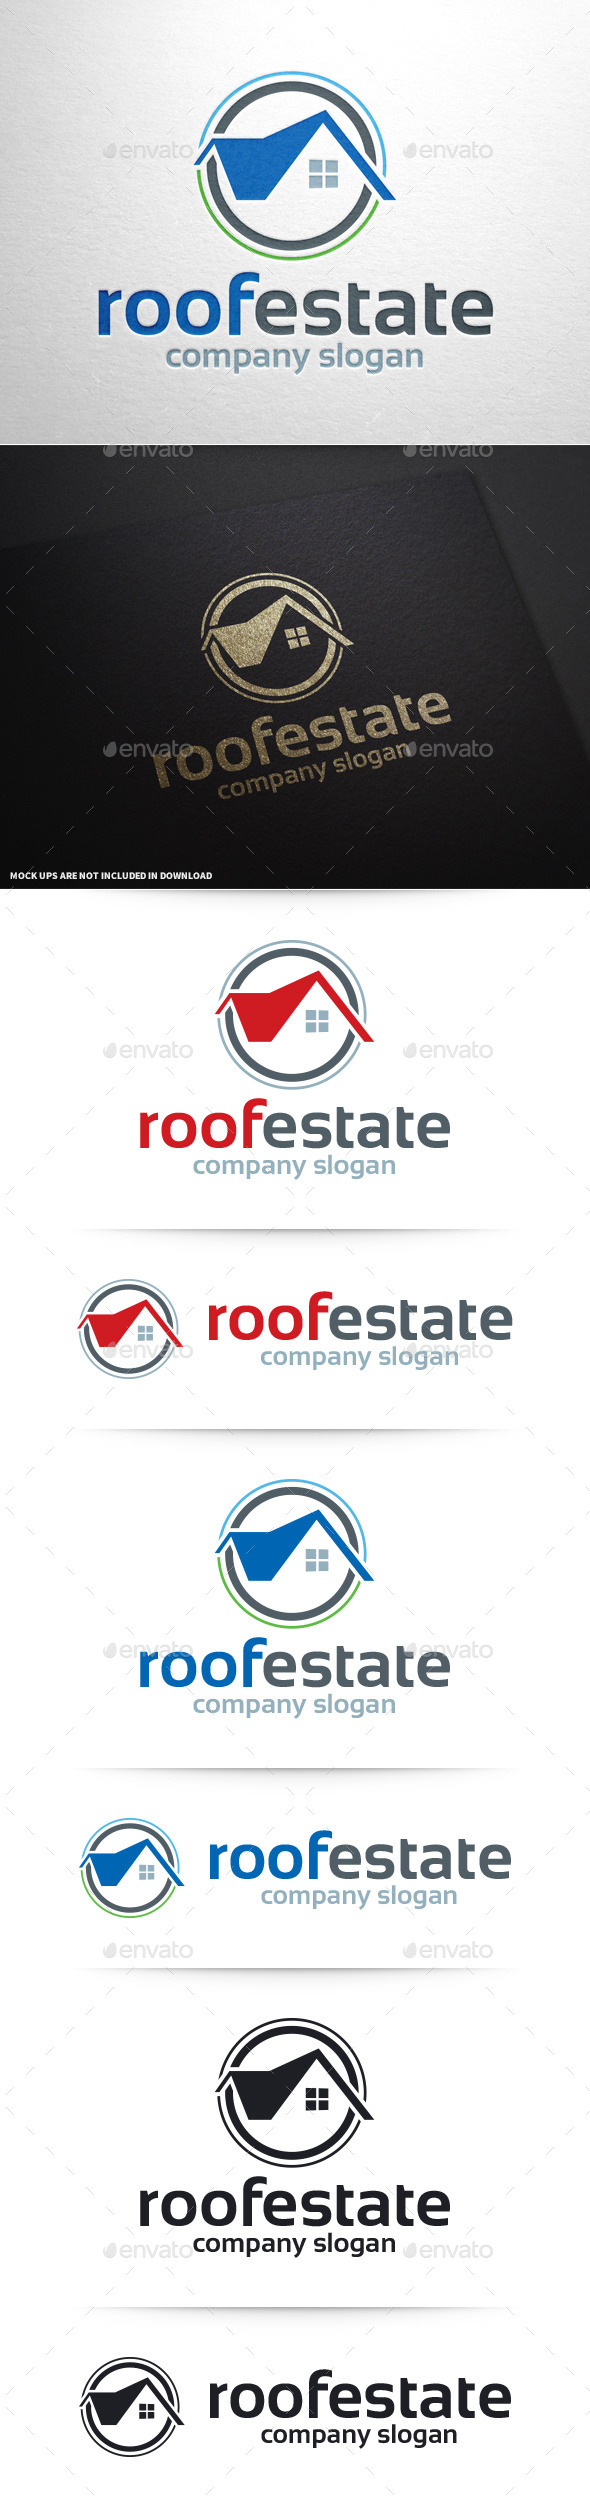 GraphicRiver Roof Estate Logo Template 10390400